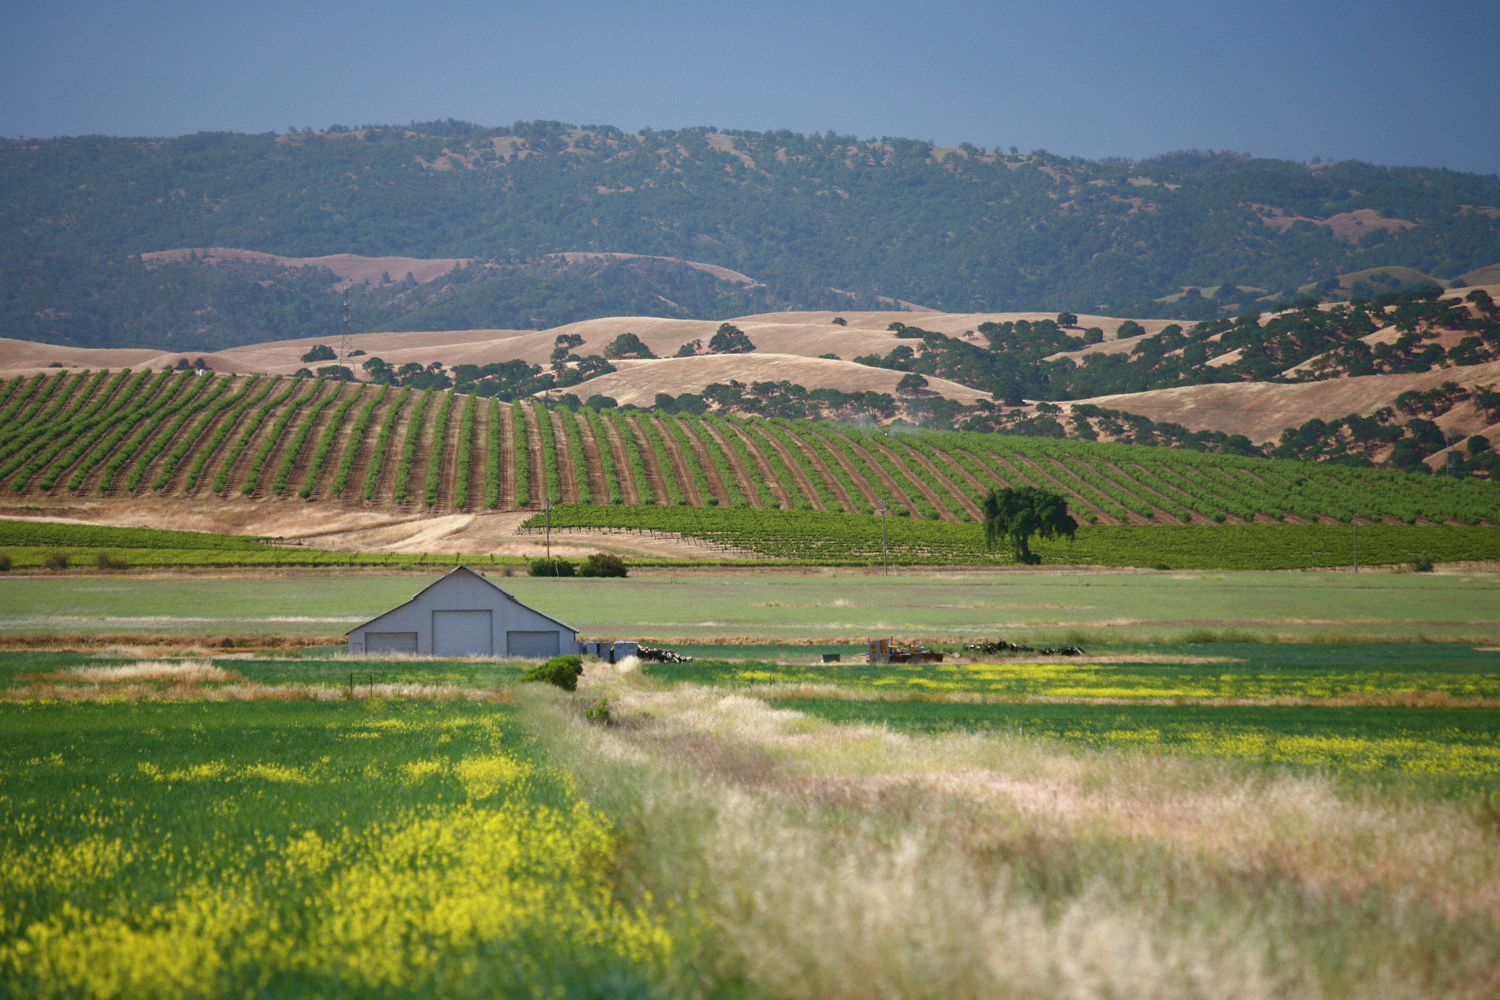 Livermore Valley grapevines